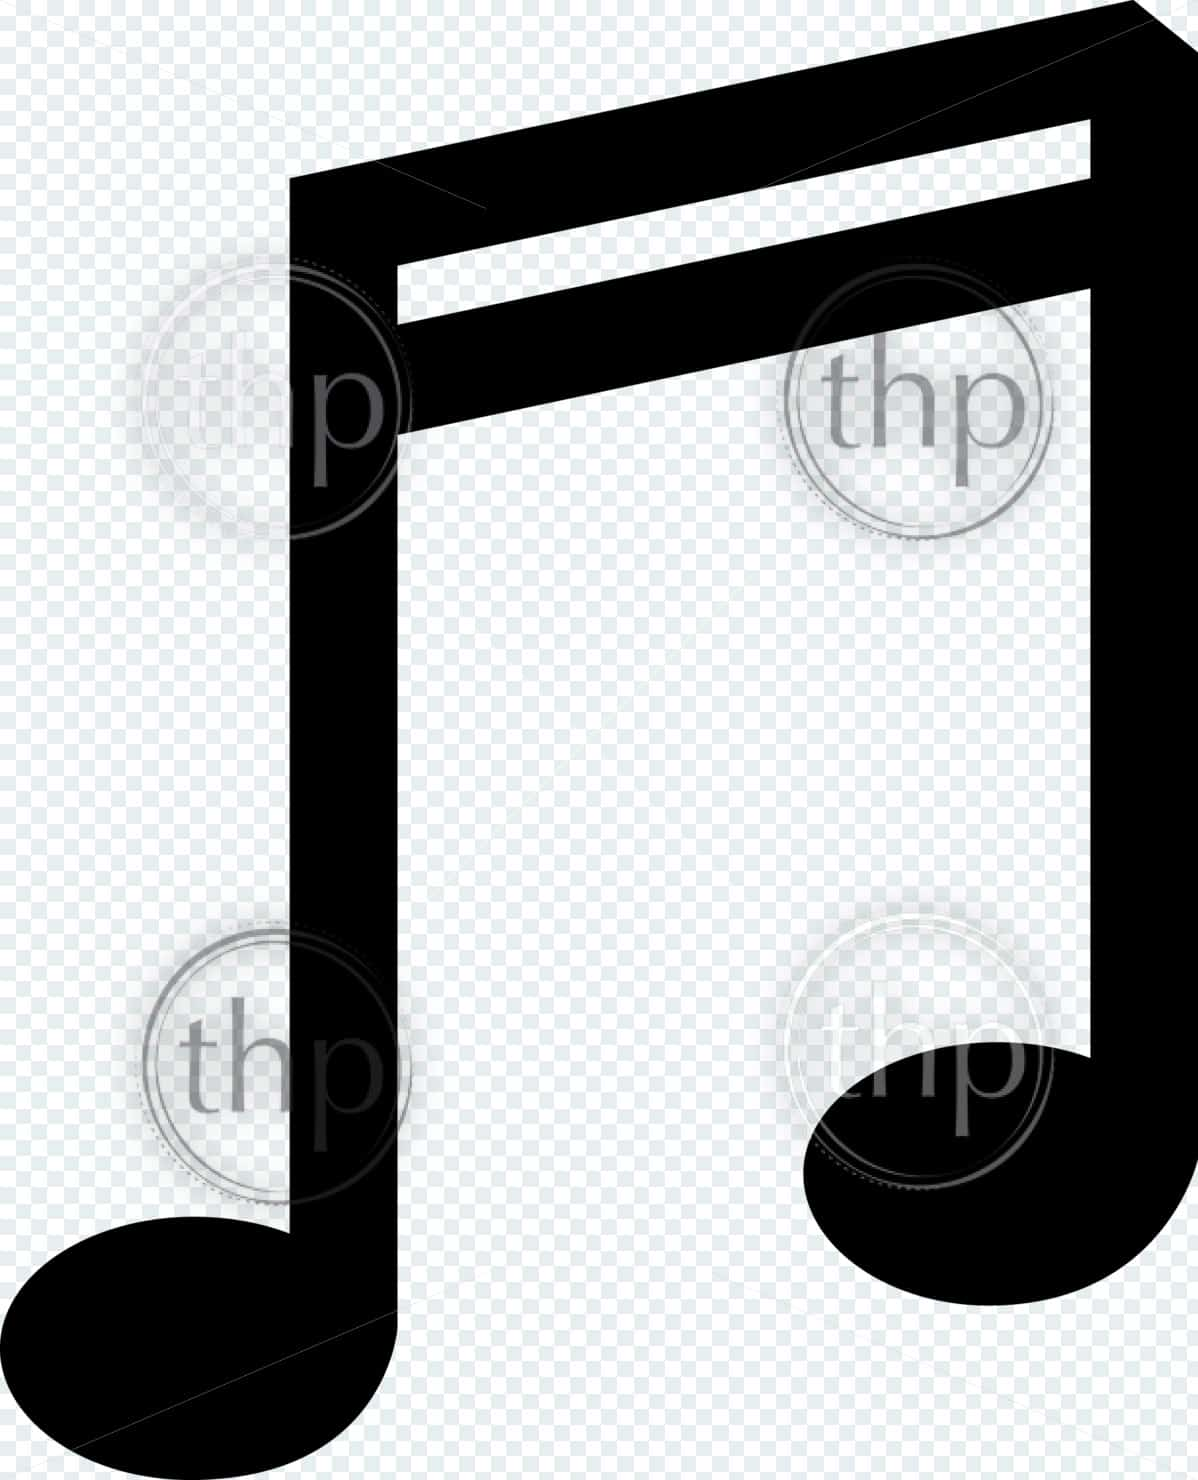 Music double bar note symbol vector illustration in black and white